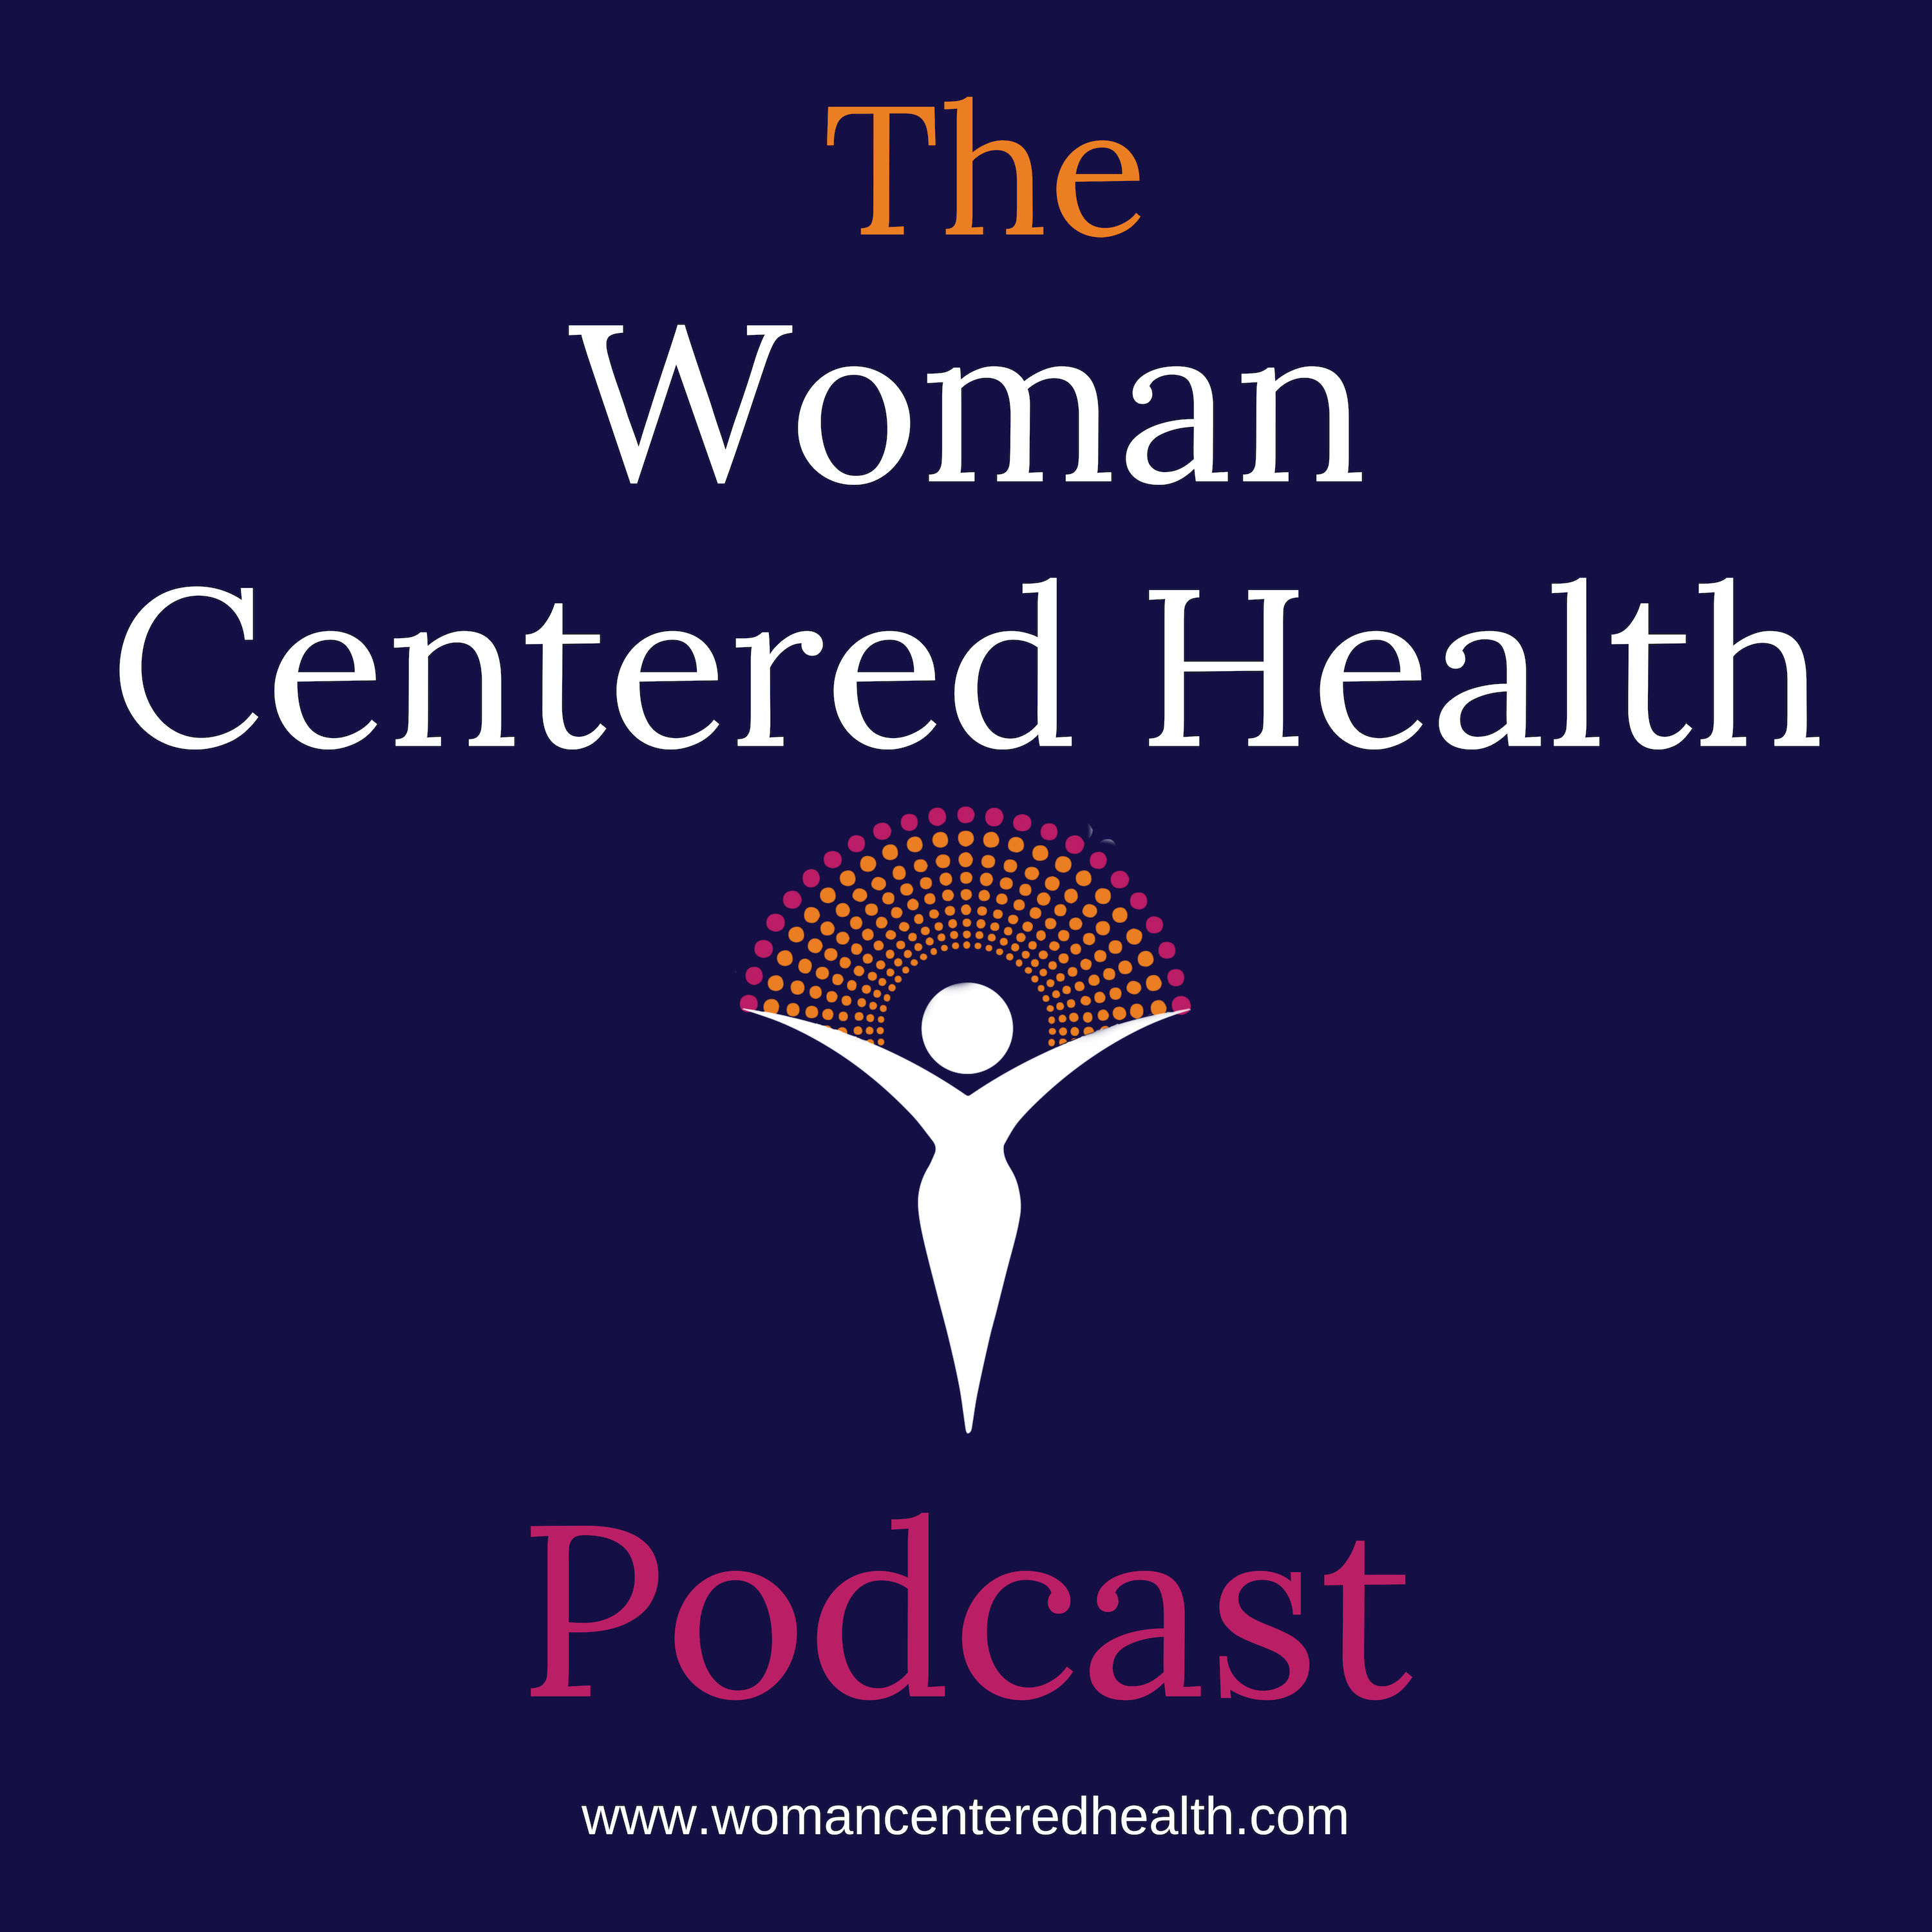 The Woman Centered Health Podcast